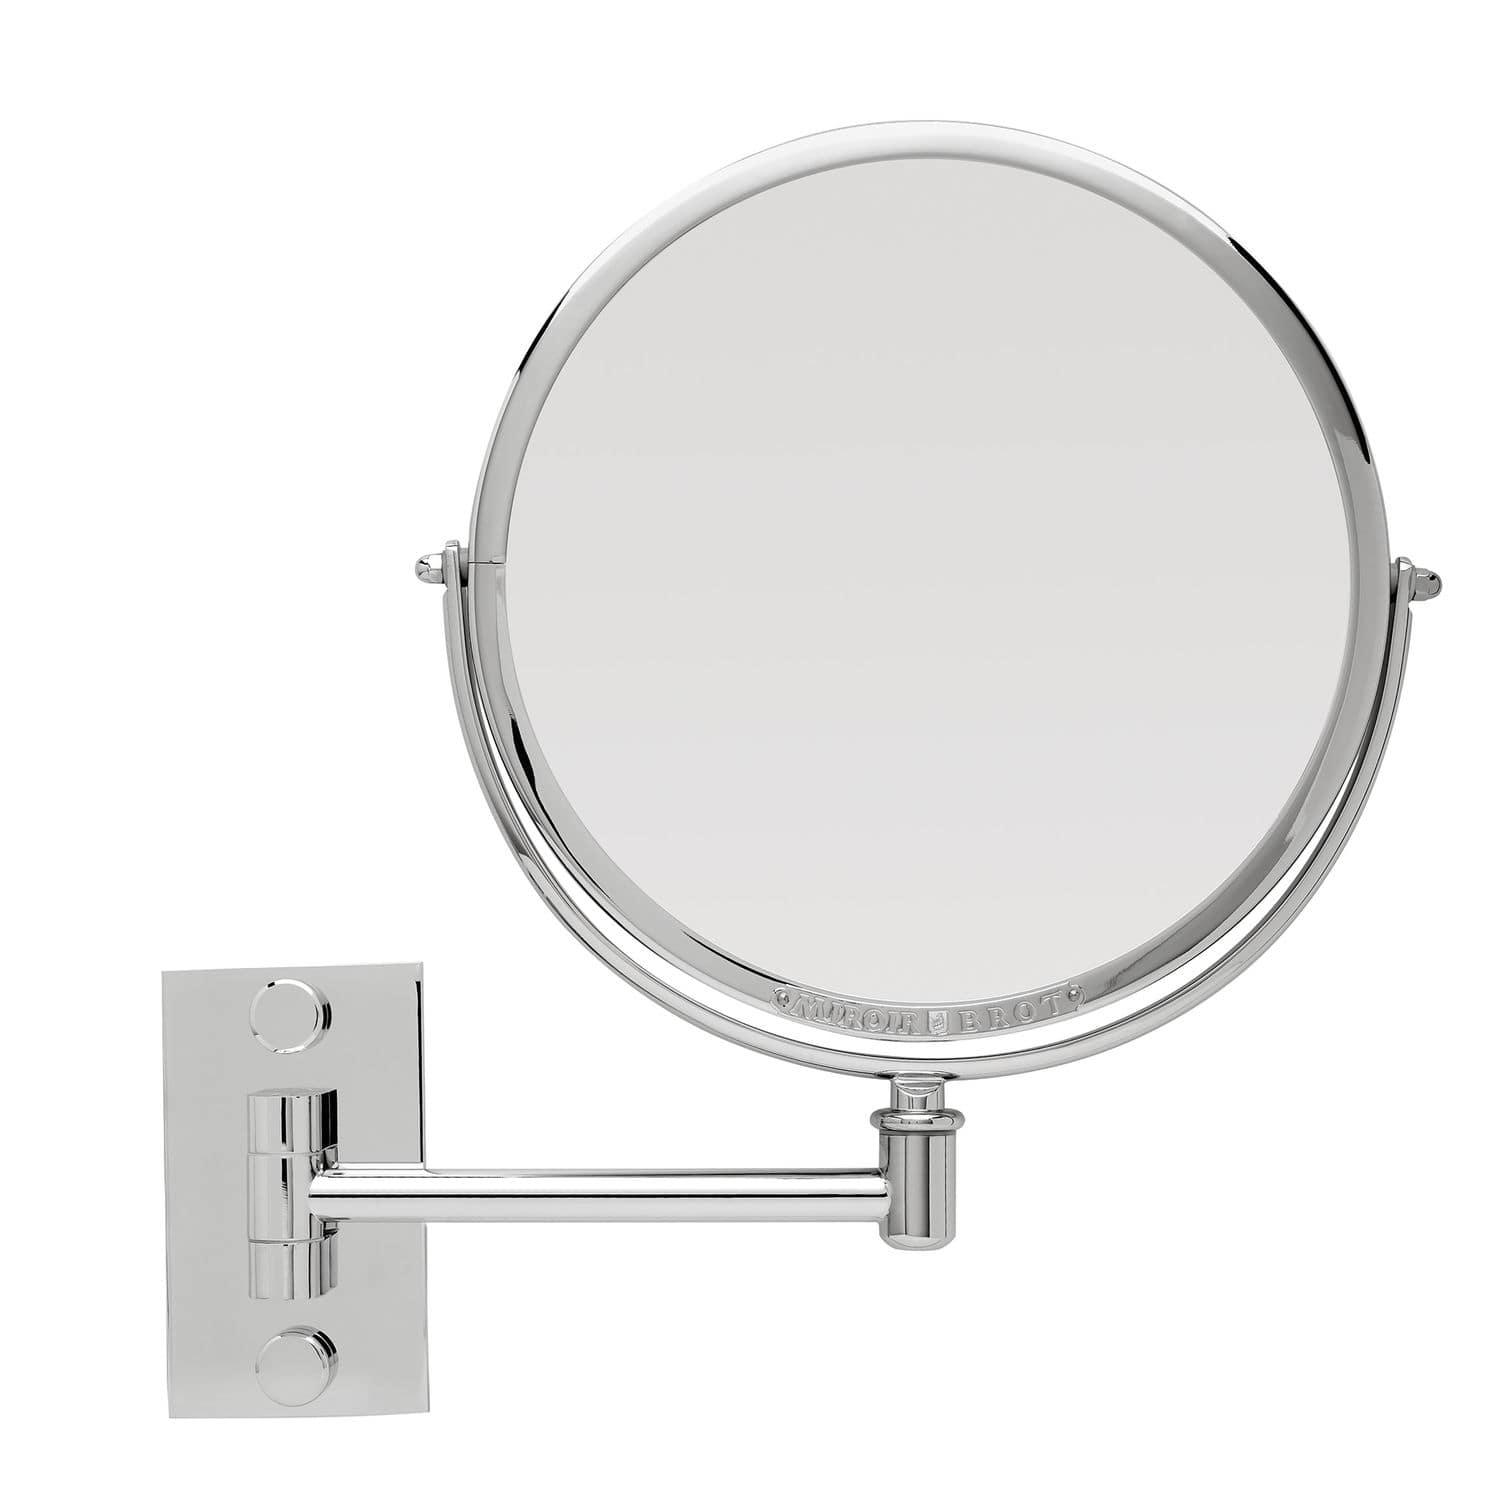 Wall-mounted bathroom mirror / magnifying / contemporary / round ...